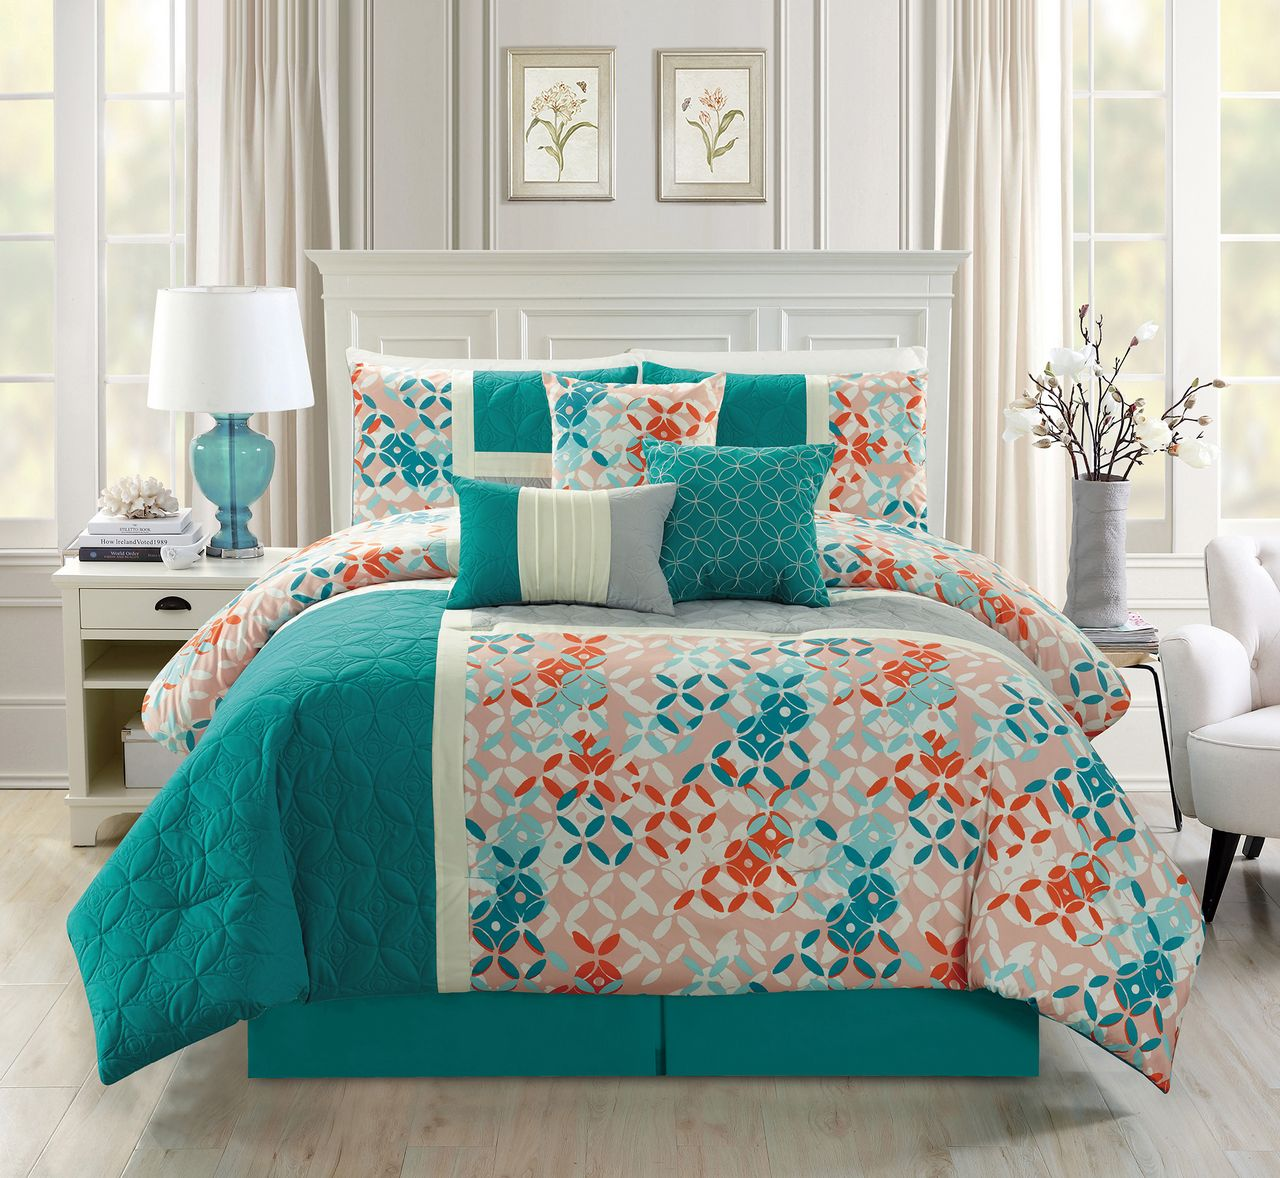 piece geometric quilted tealcoral comforter set -  piece geometric quilted tealcoral comforter set